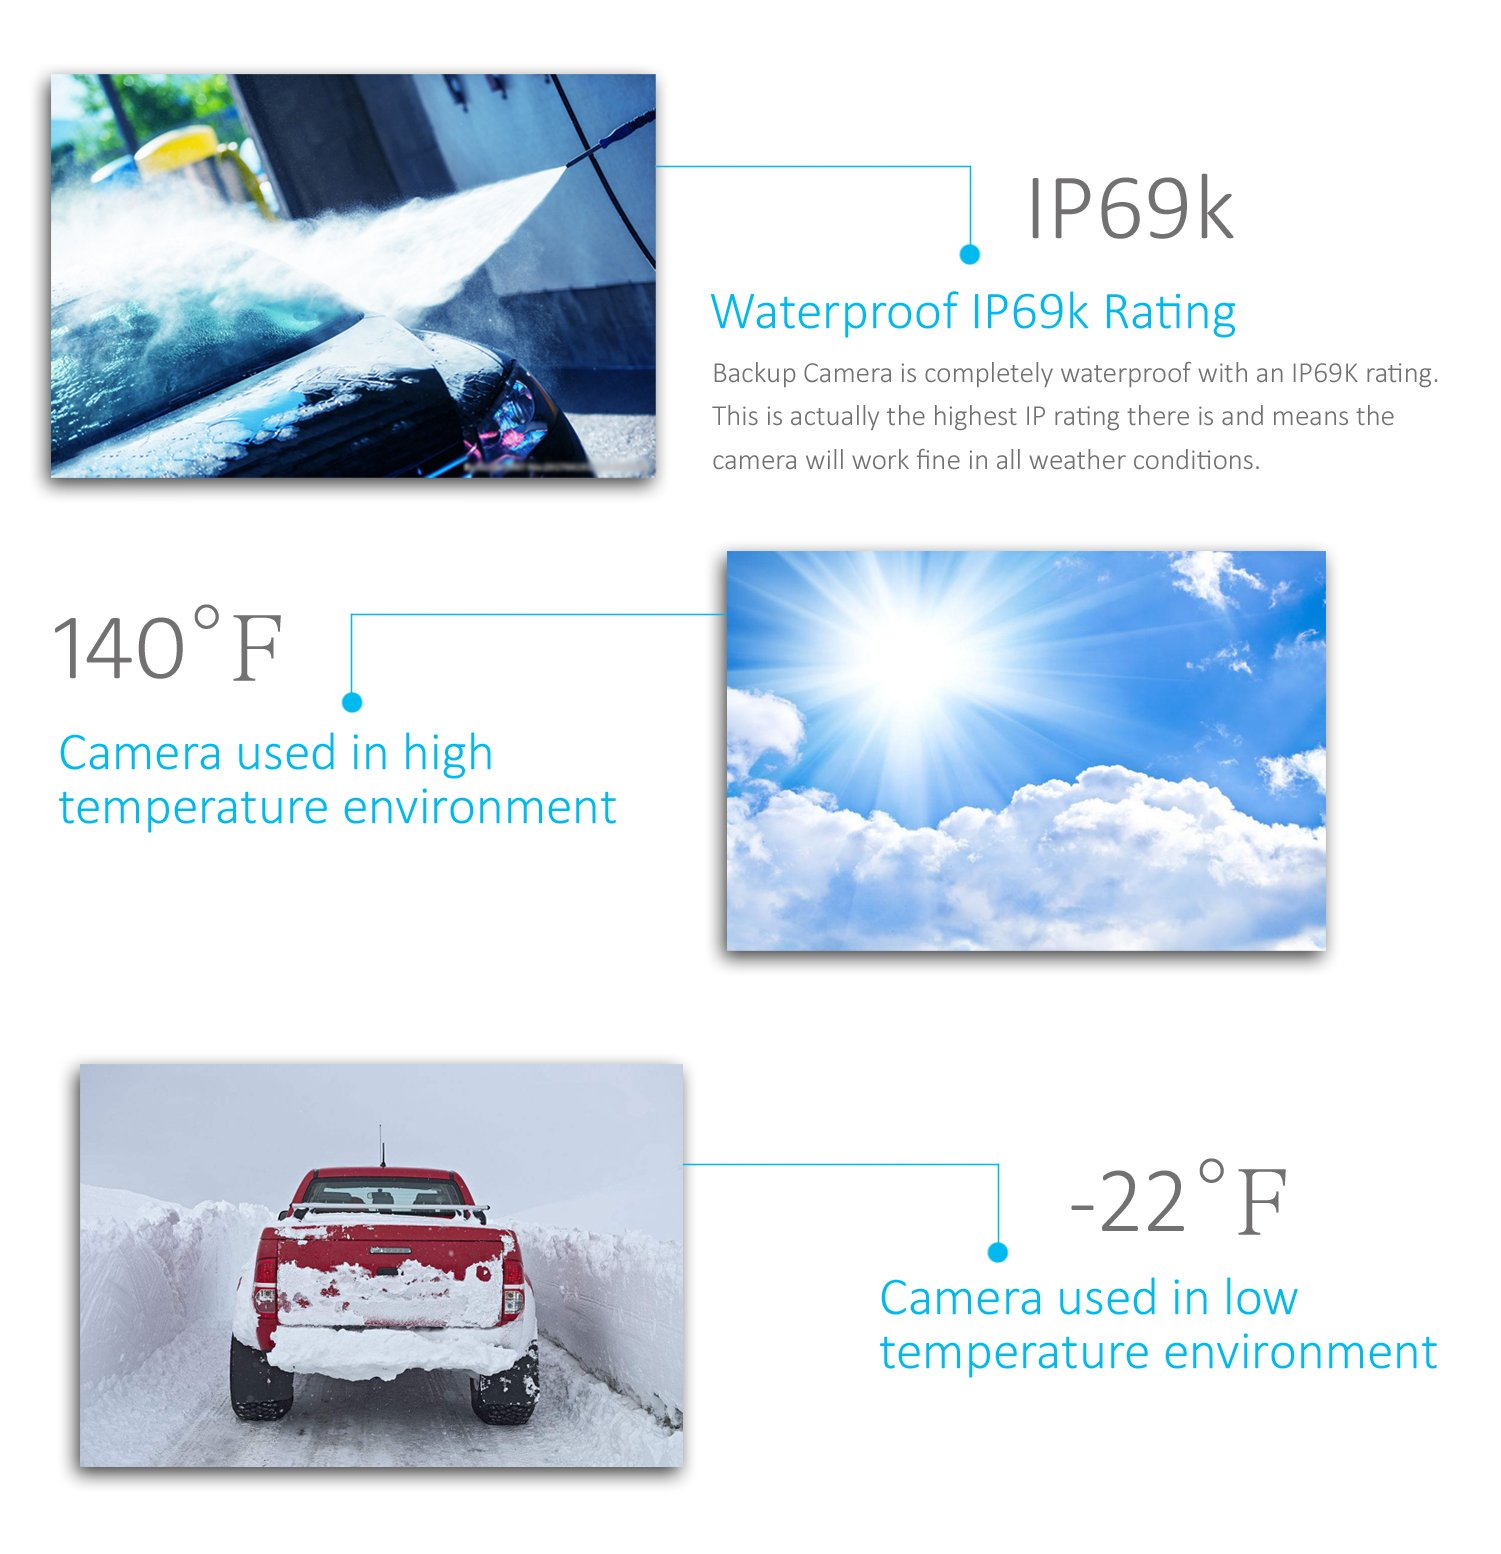 Wireless Backup Camera System, IP69K Waterproof Wireless License Plate Rear View Camera, Night Vision and 4.3'' Wireless Mirror Monitor for Cars, Trailer, RV, Pickup Trucks, Cargo Vans, etc. by yuwei (Image #5)